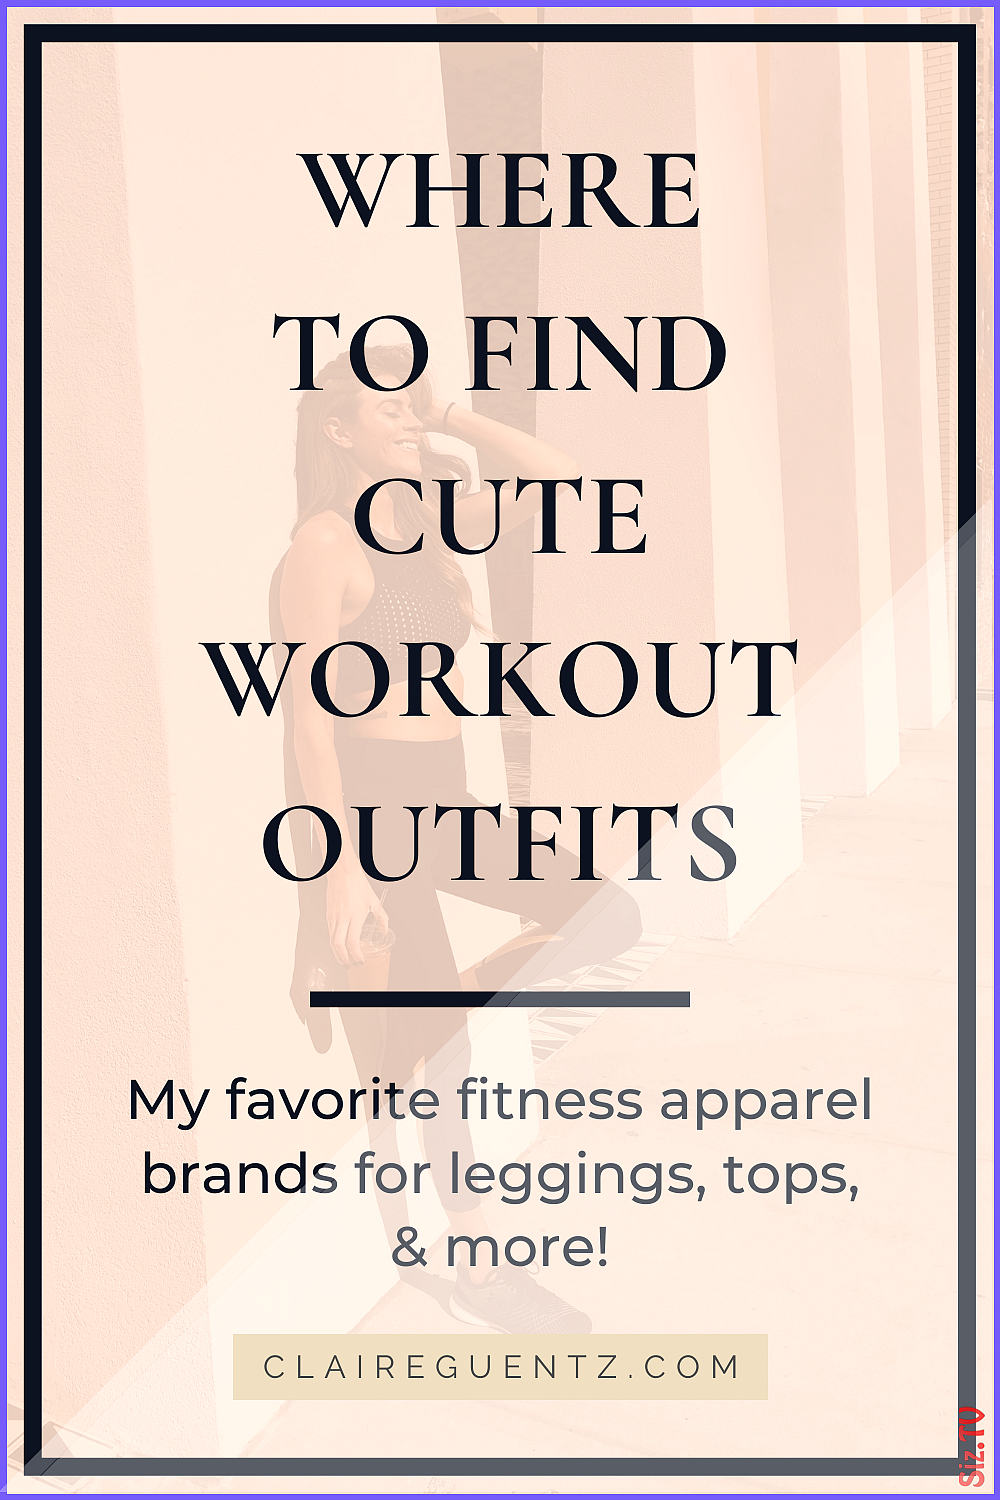 Workout Outfit Inspiration Workout Outfit Inspiration Claire Guentz Lifestyle 038 Fitness claireguen...